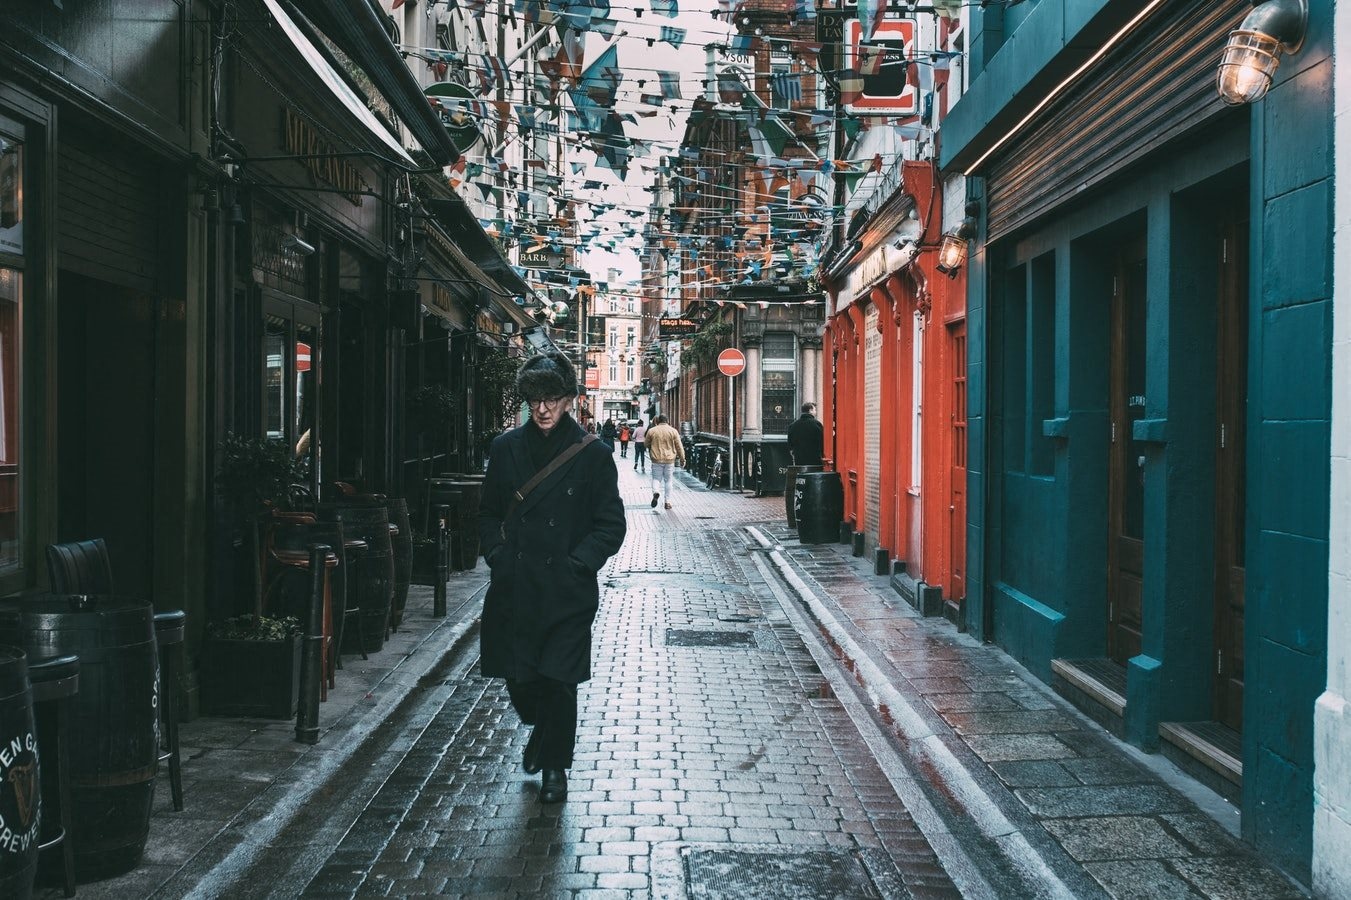 Rainy Walkway and colorful buildings